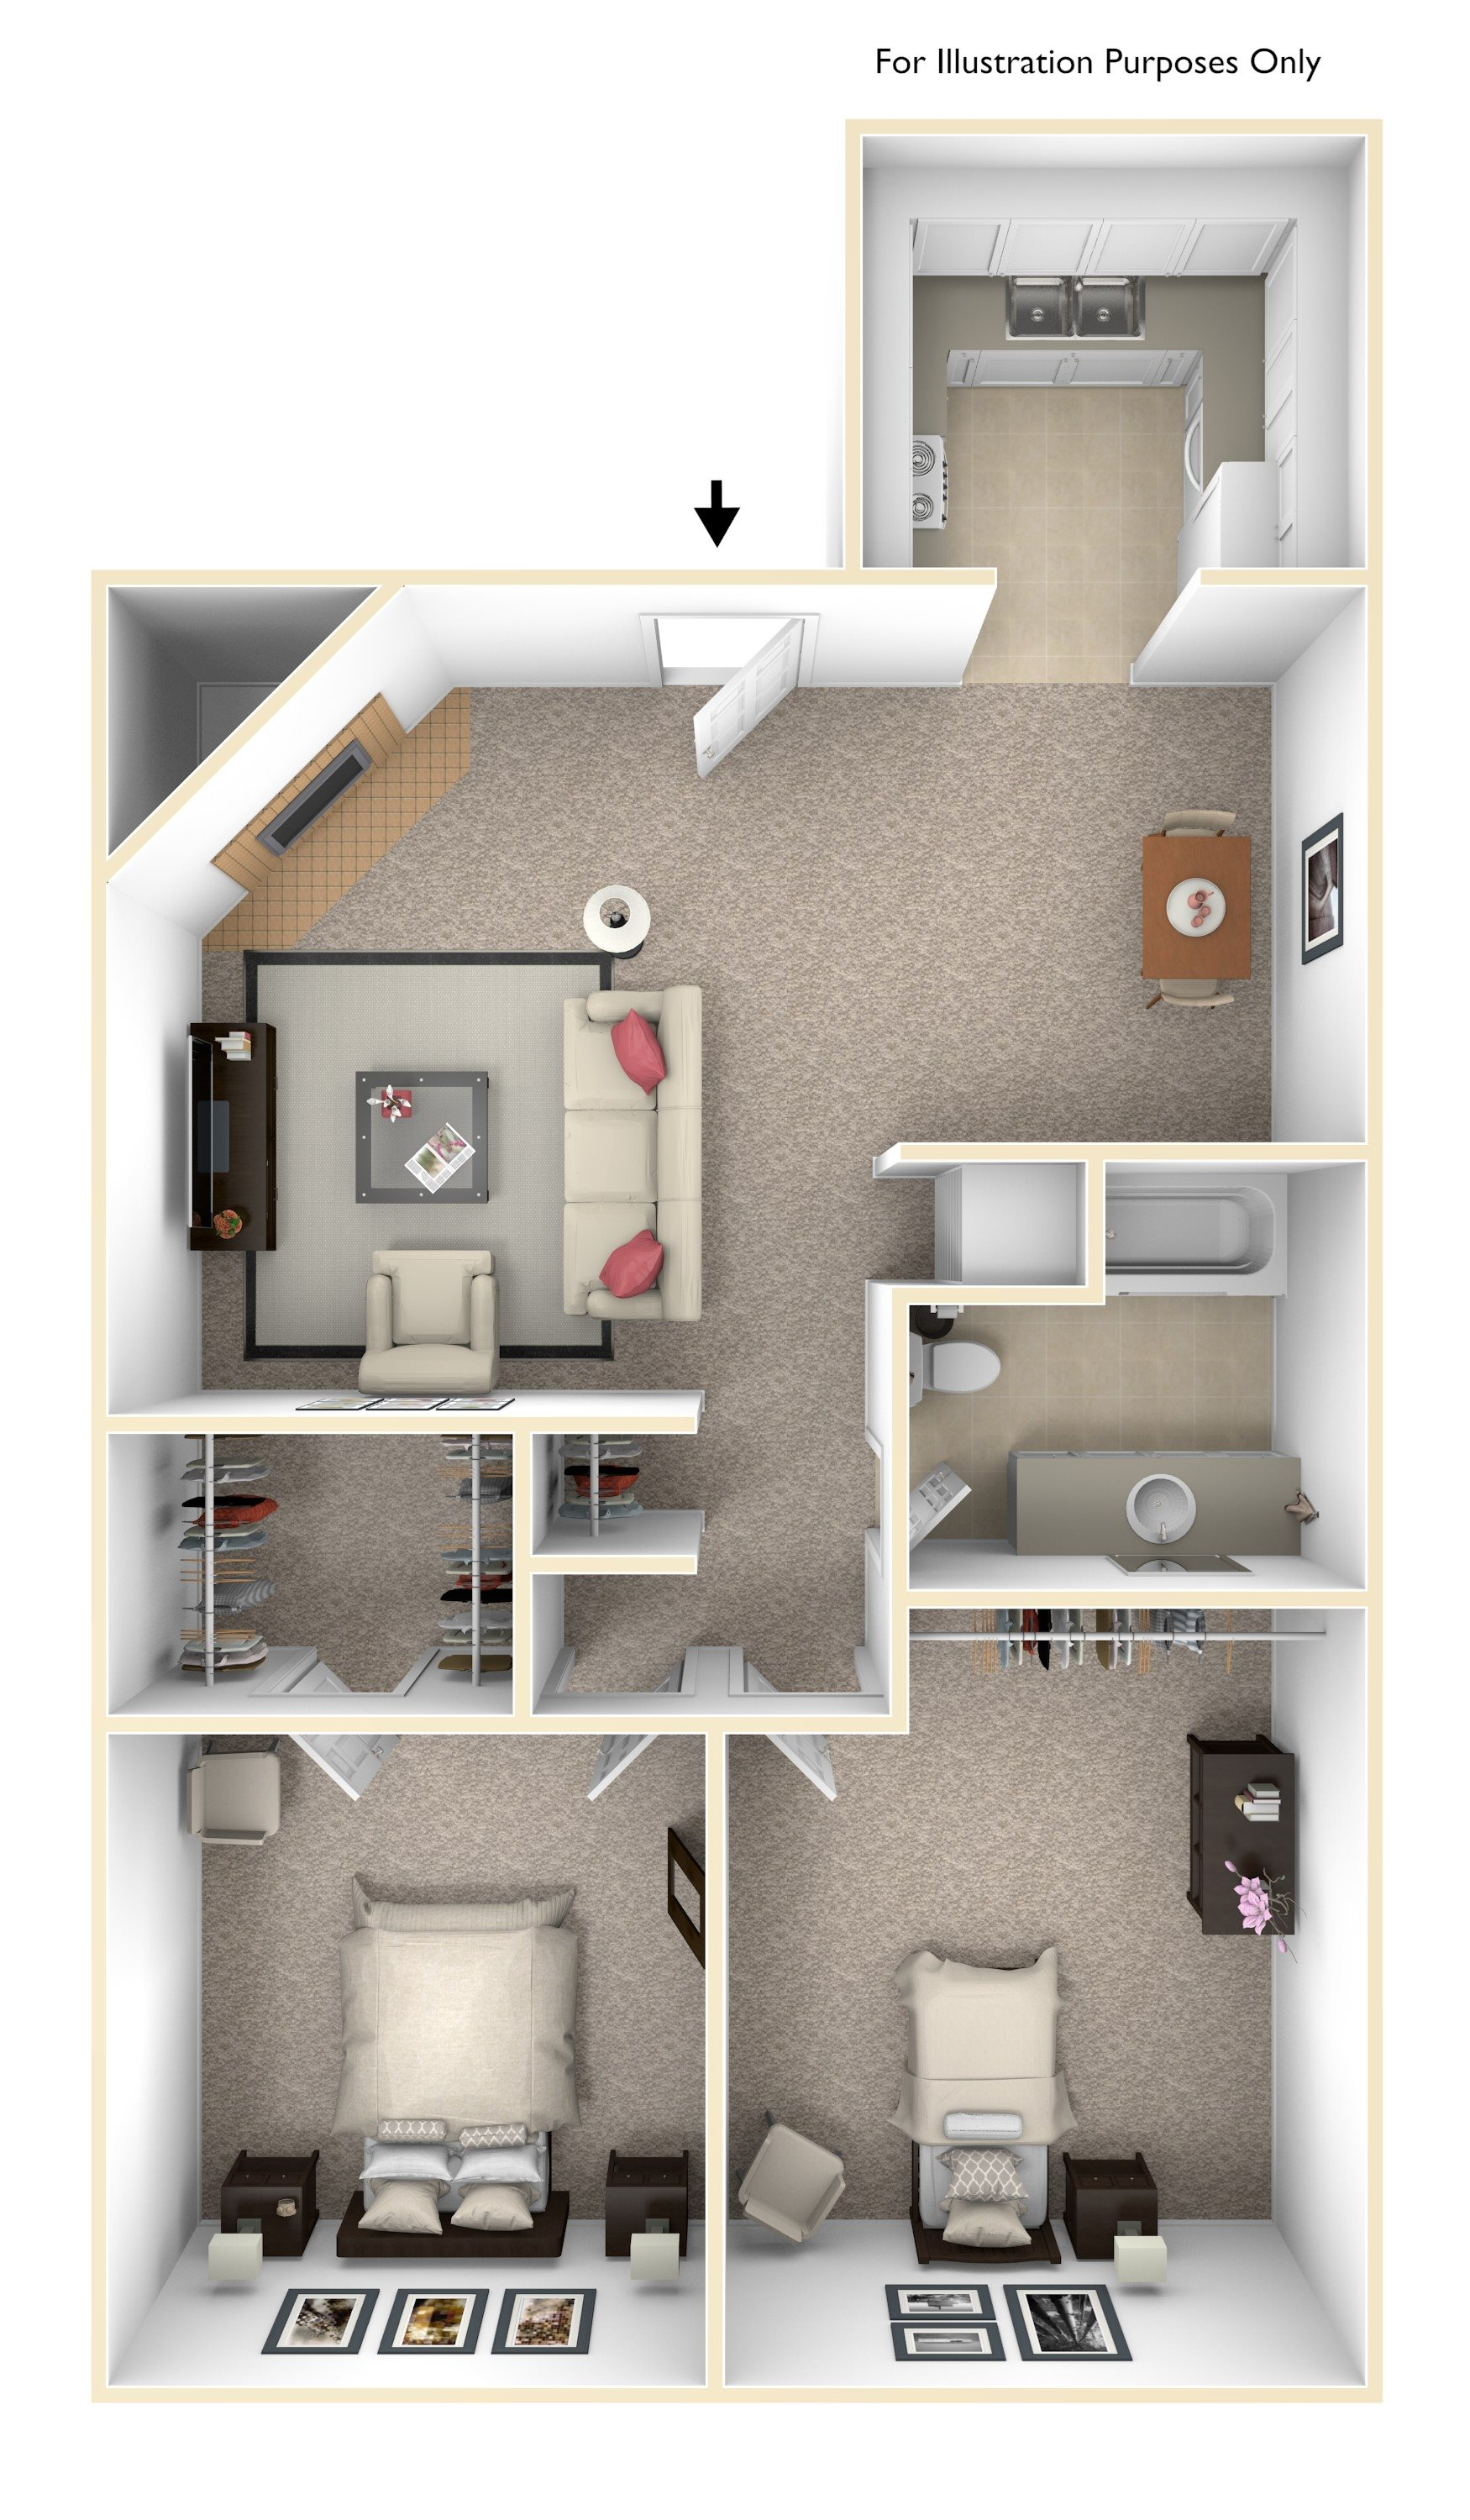 2 Bedroom/1 Bathroom